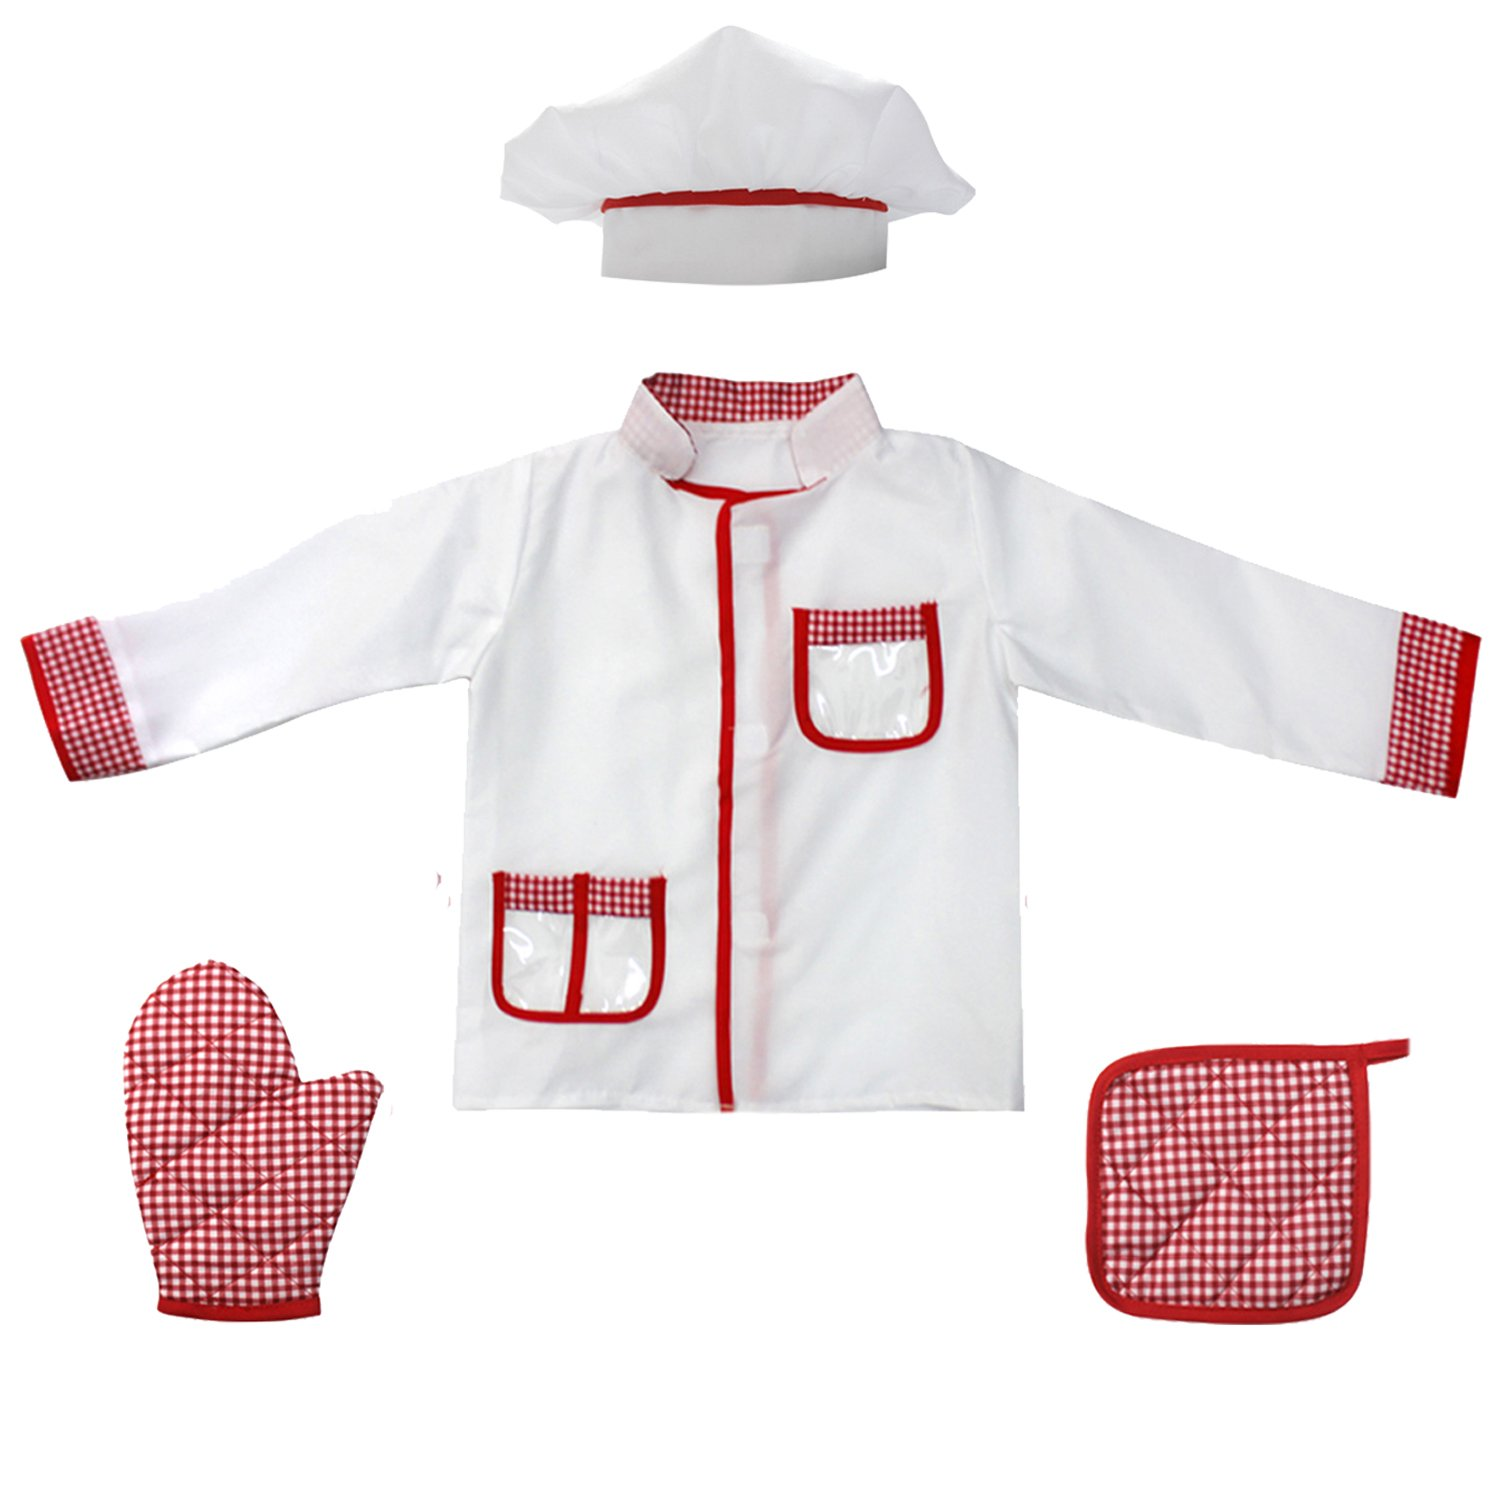 4Pcs Kids Chef Role Play Costume Set fedio Chef Dress up Set for Children(Ages 2-4) (Red gingham) by fedio